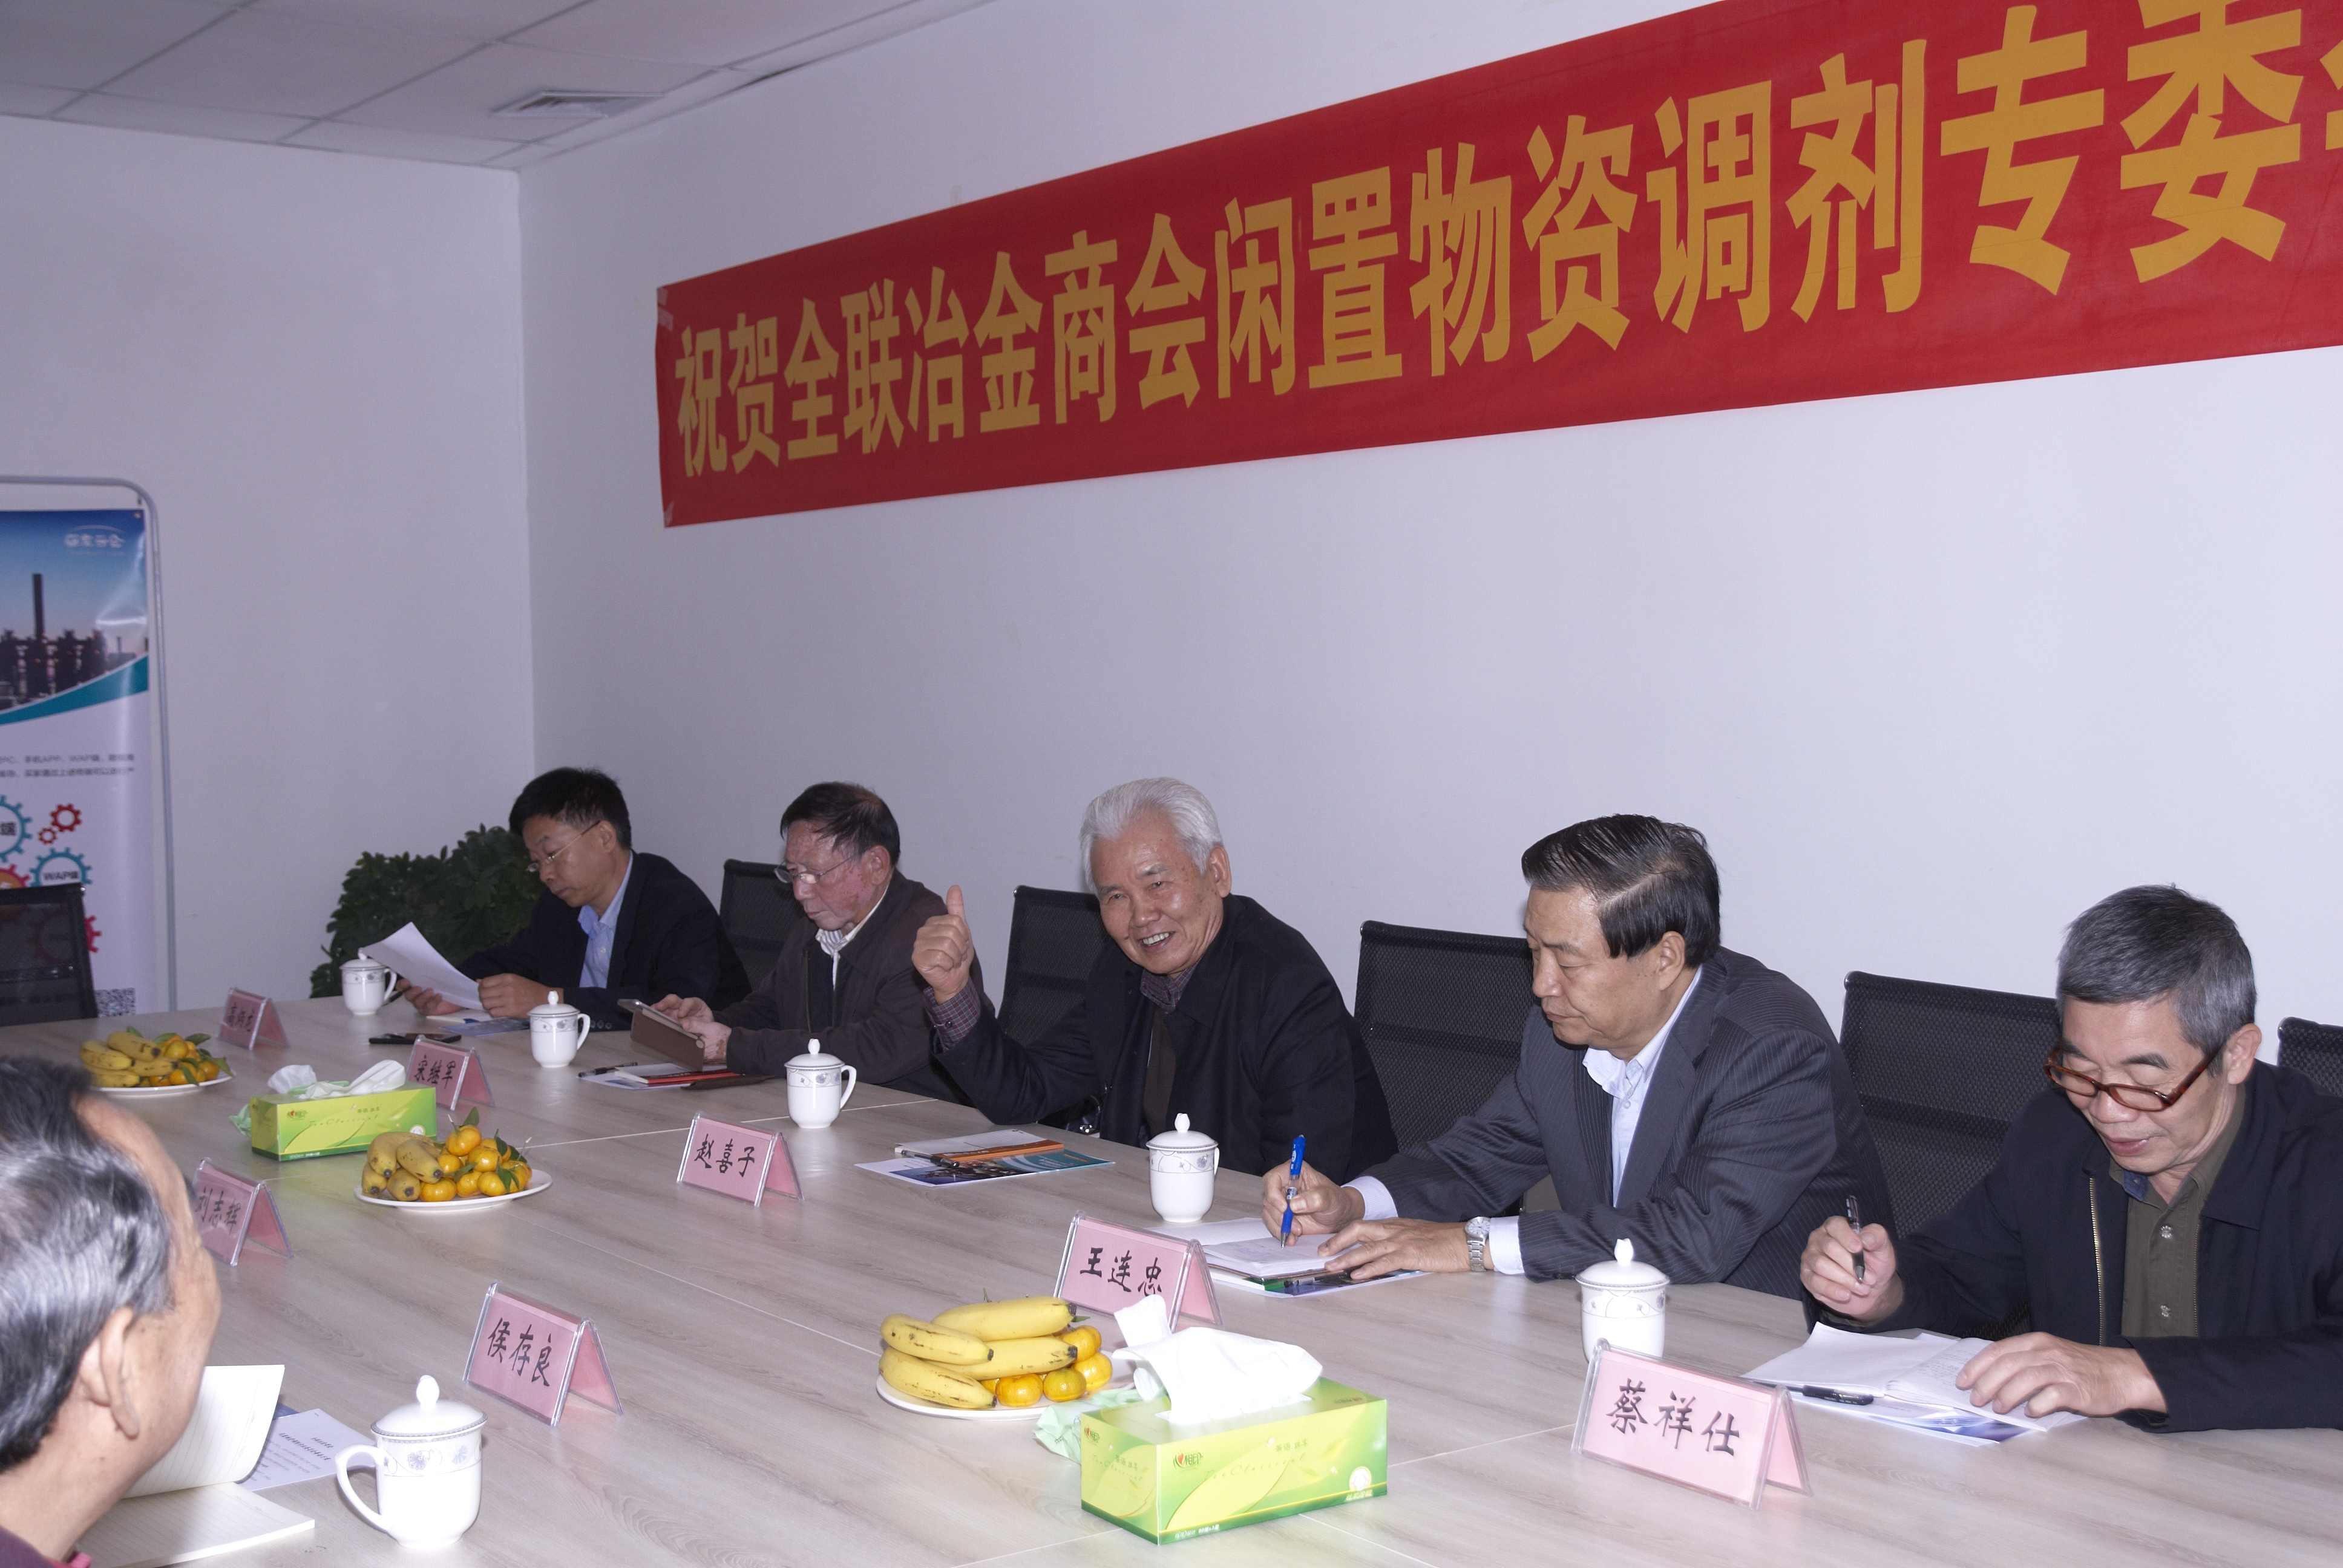 The leader of China Metallugical Associational visit our company